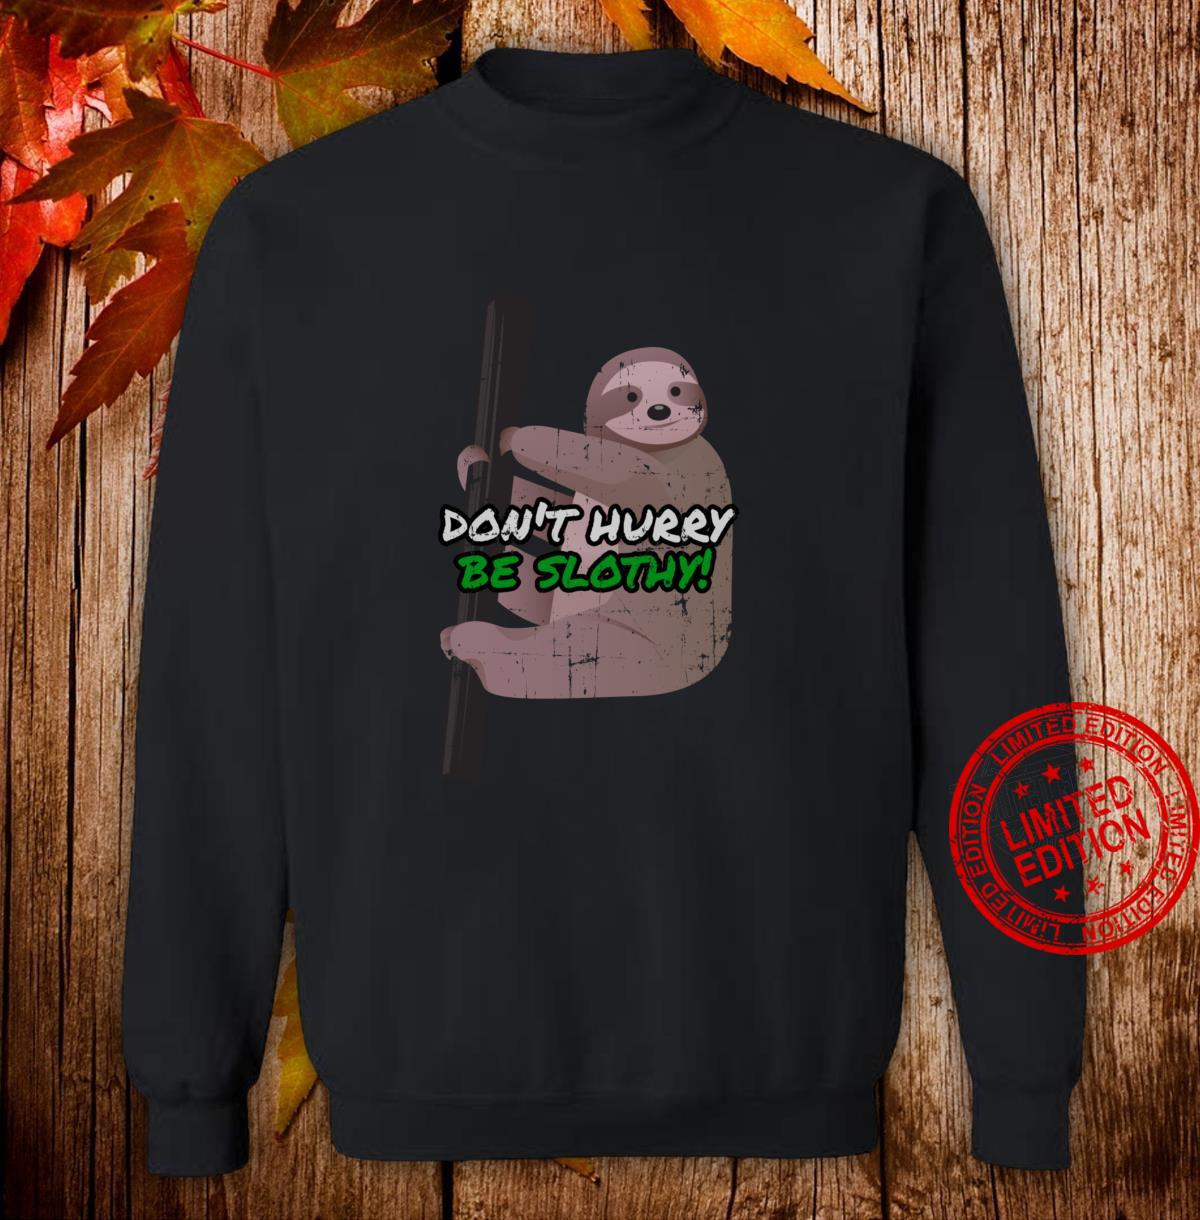 Funny Humorous Sloth Design Don't Hurry Be Slothy Shirt sweater